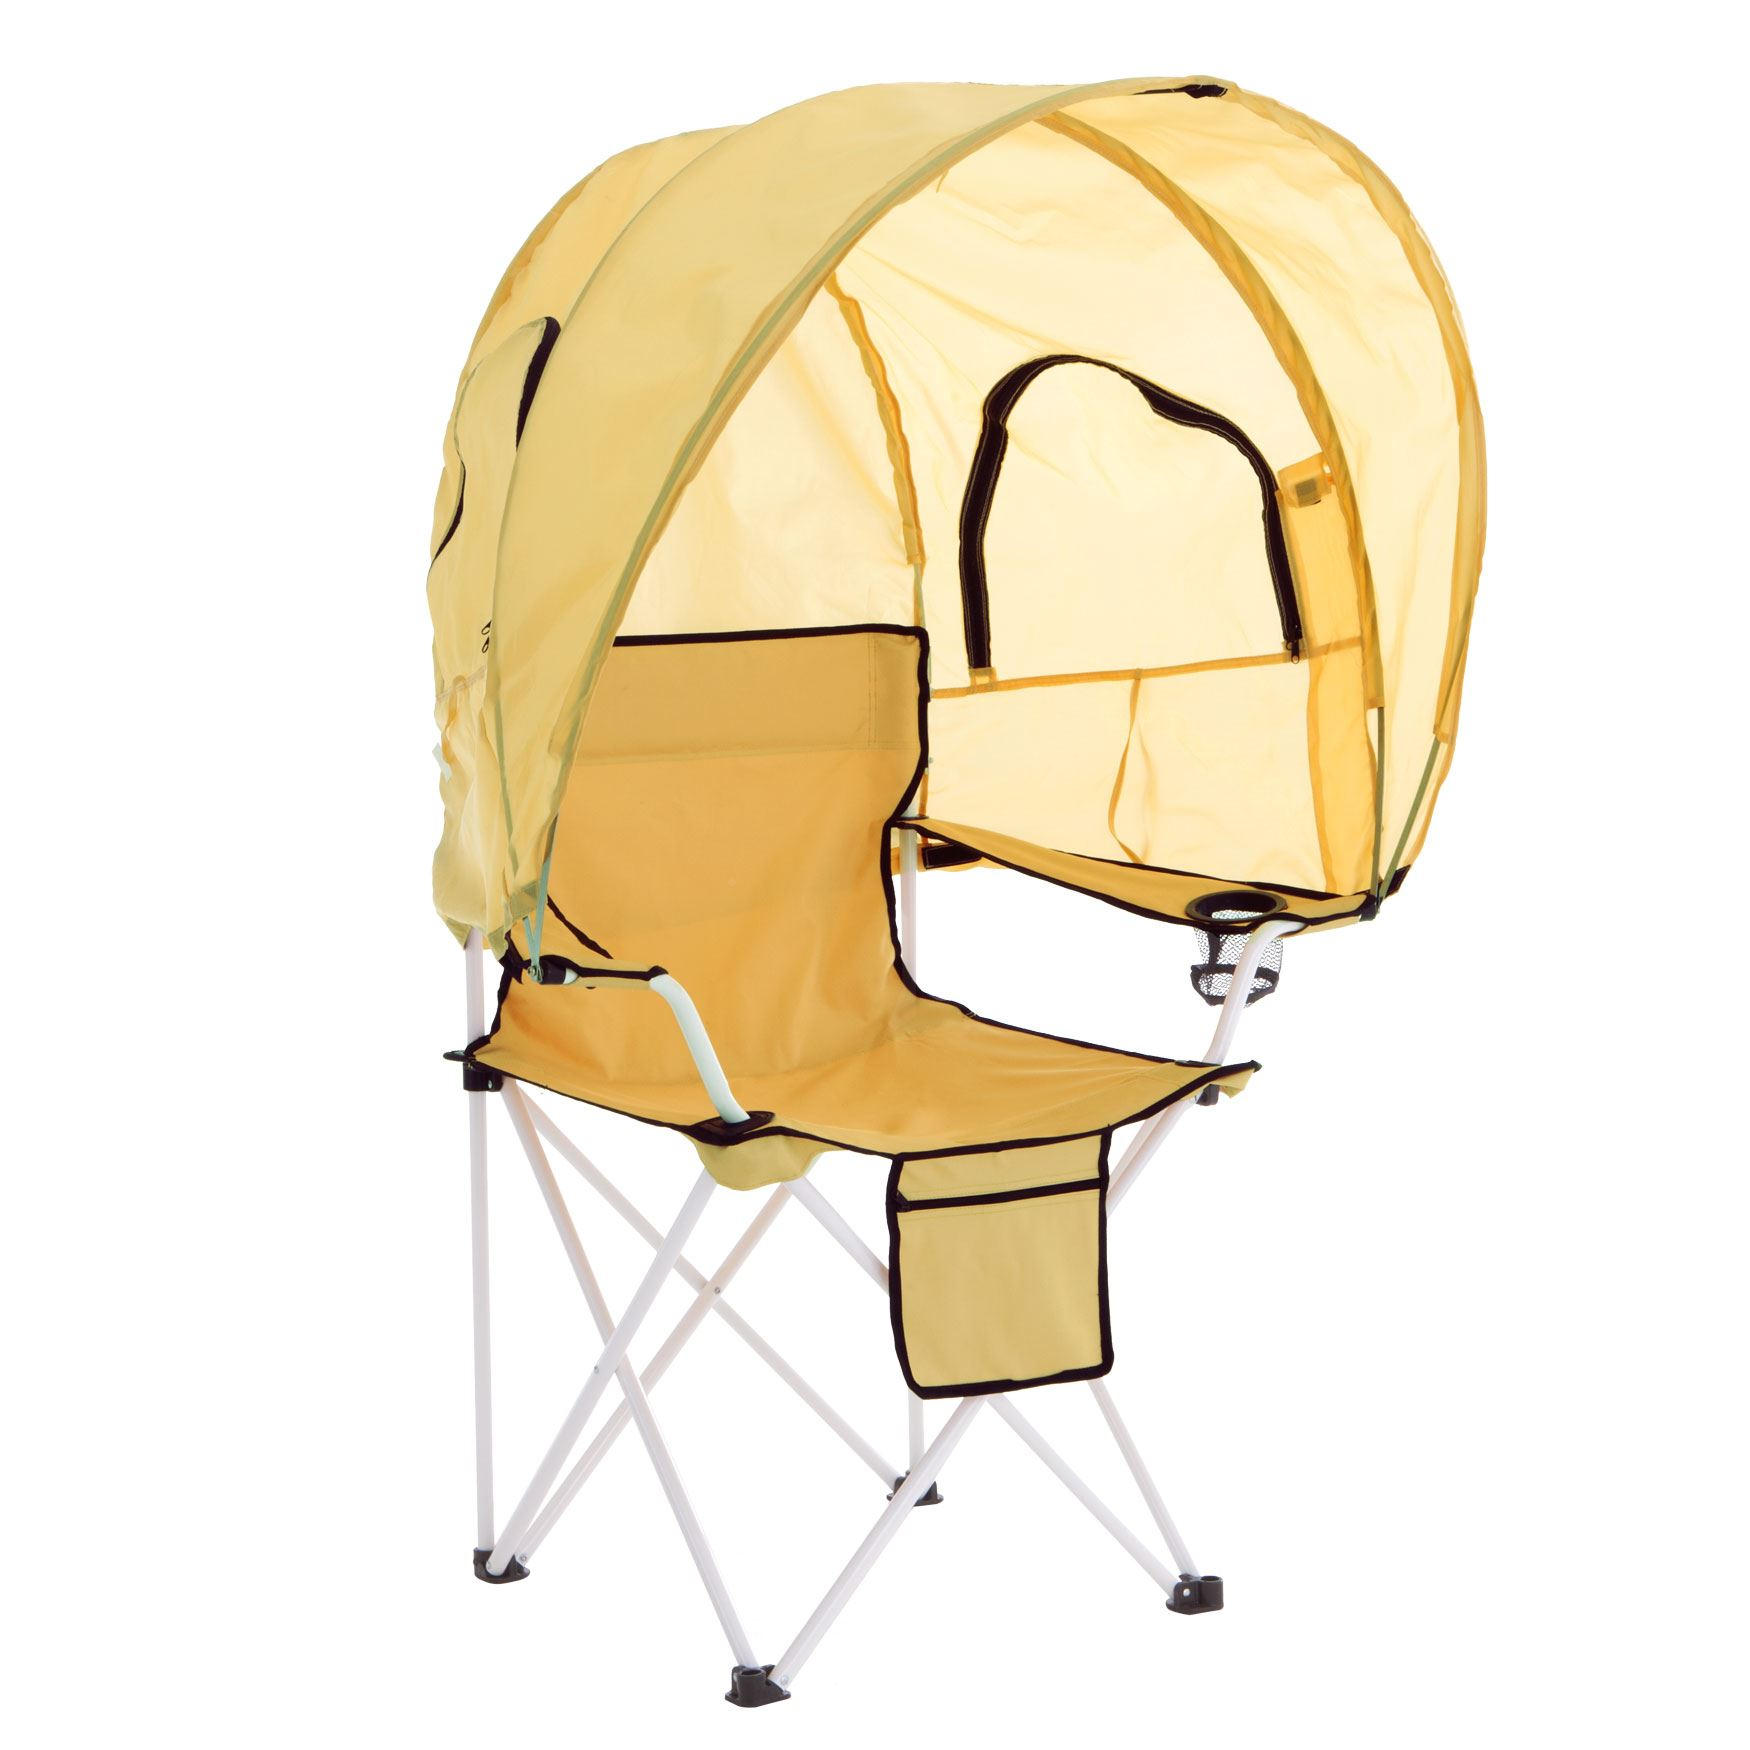 Camp Chair With Canopy Camp Chair With Canopy Plus Size Outdoor Brylane Home